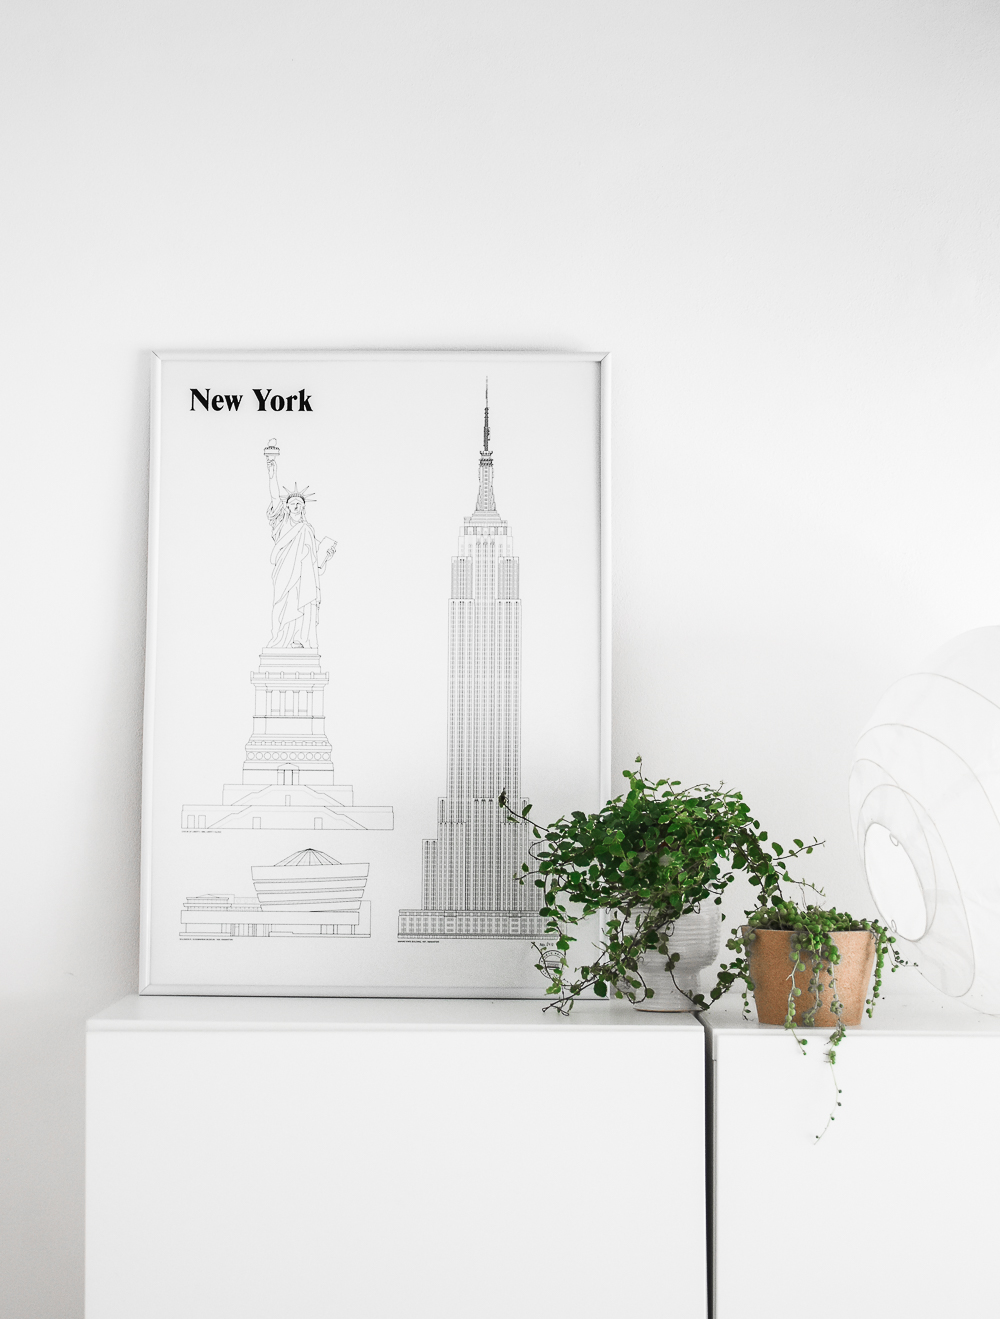 New York - New Print from Poster Club